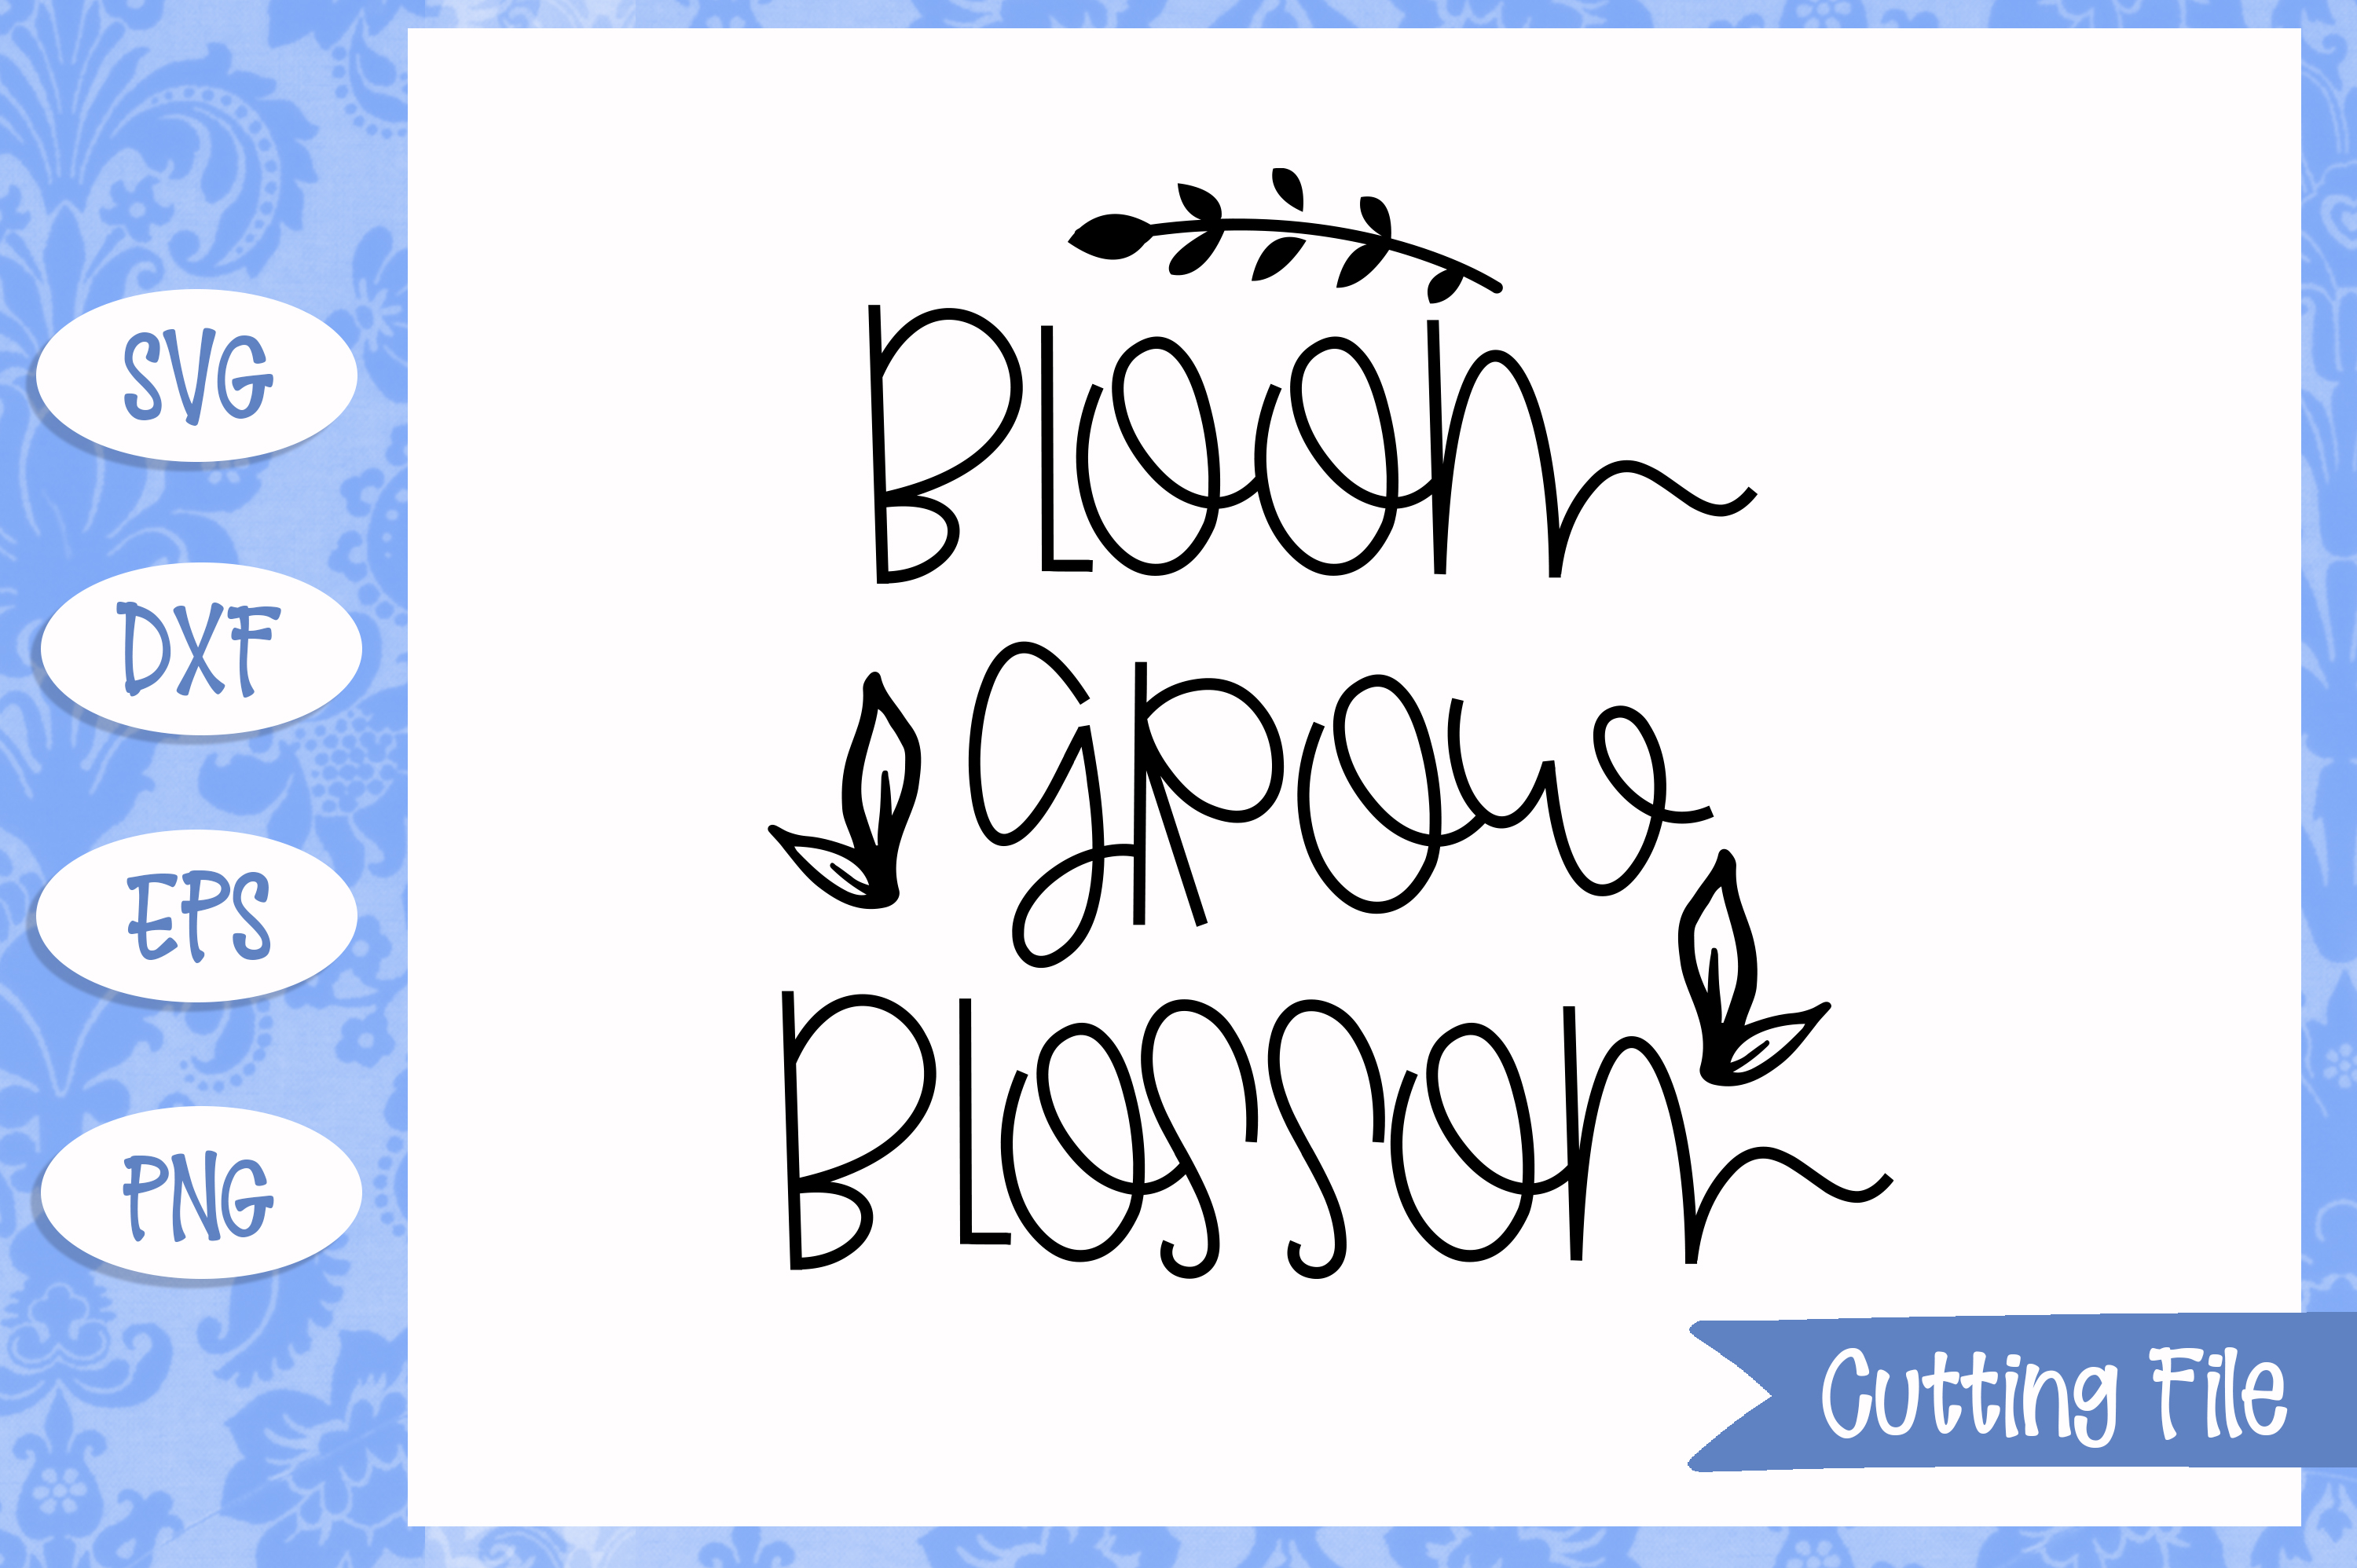 Bloom grow blossom SVG File example image 1